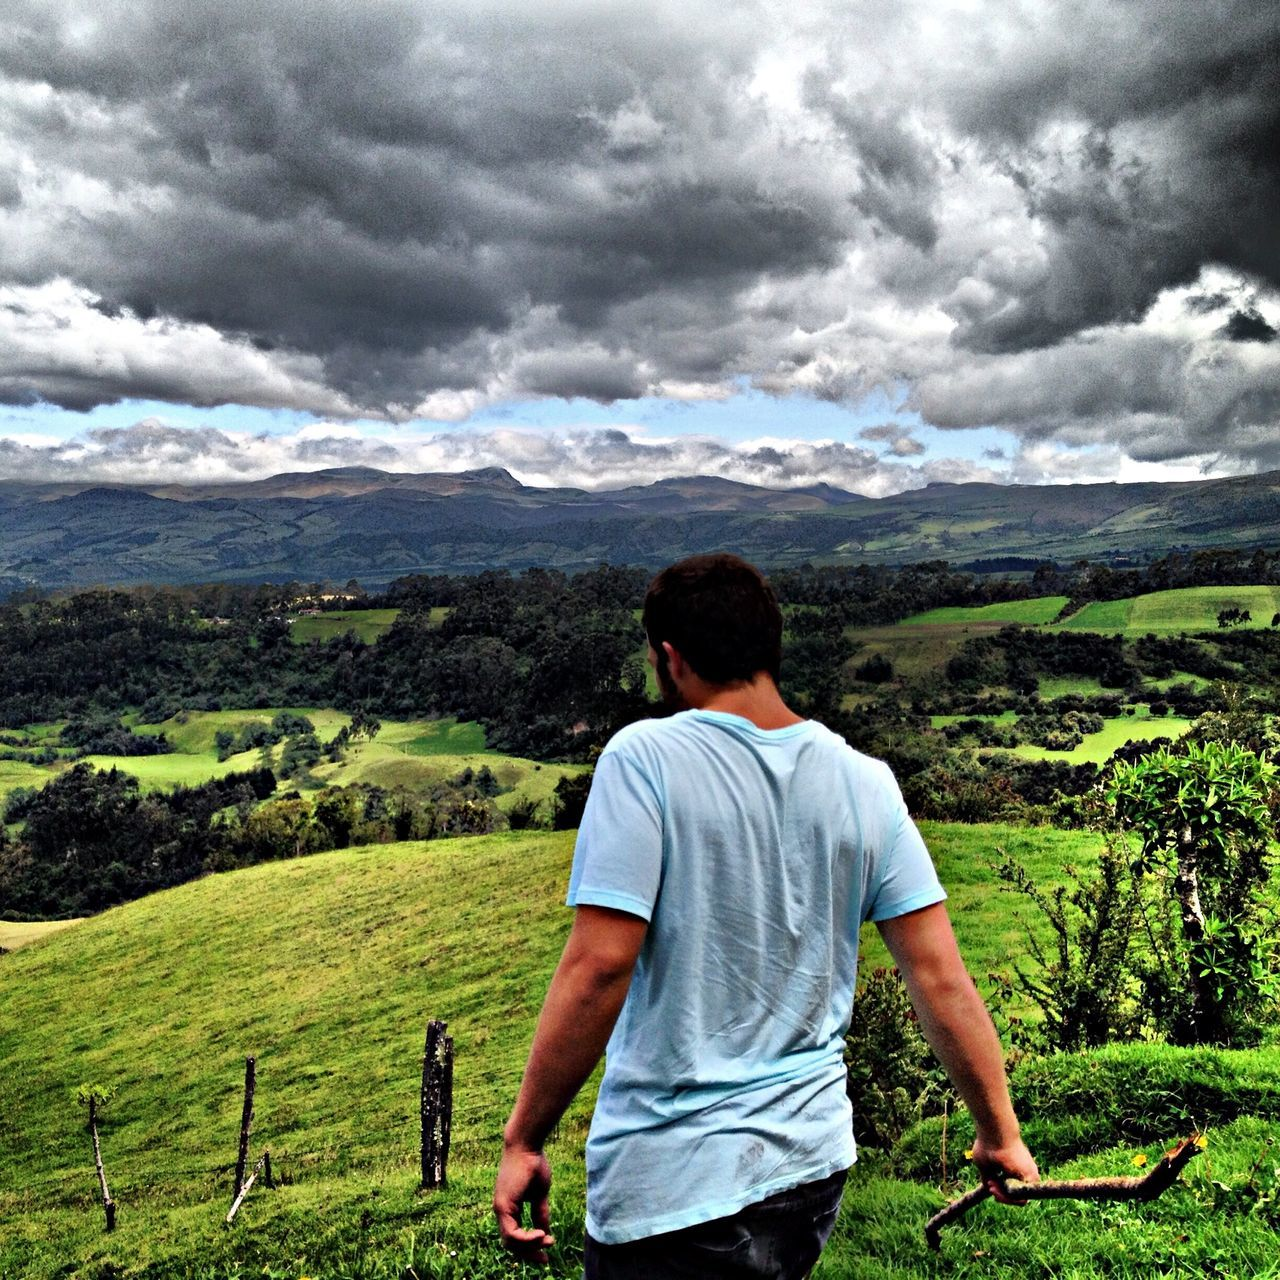 Rear view of a man overlooking landscape below clouds